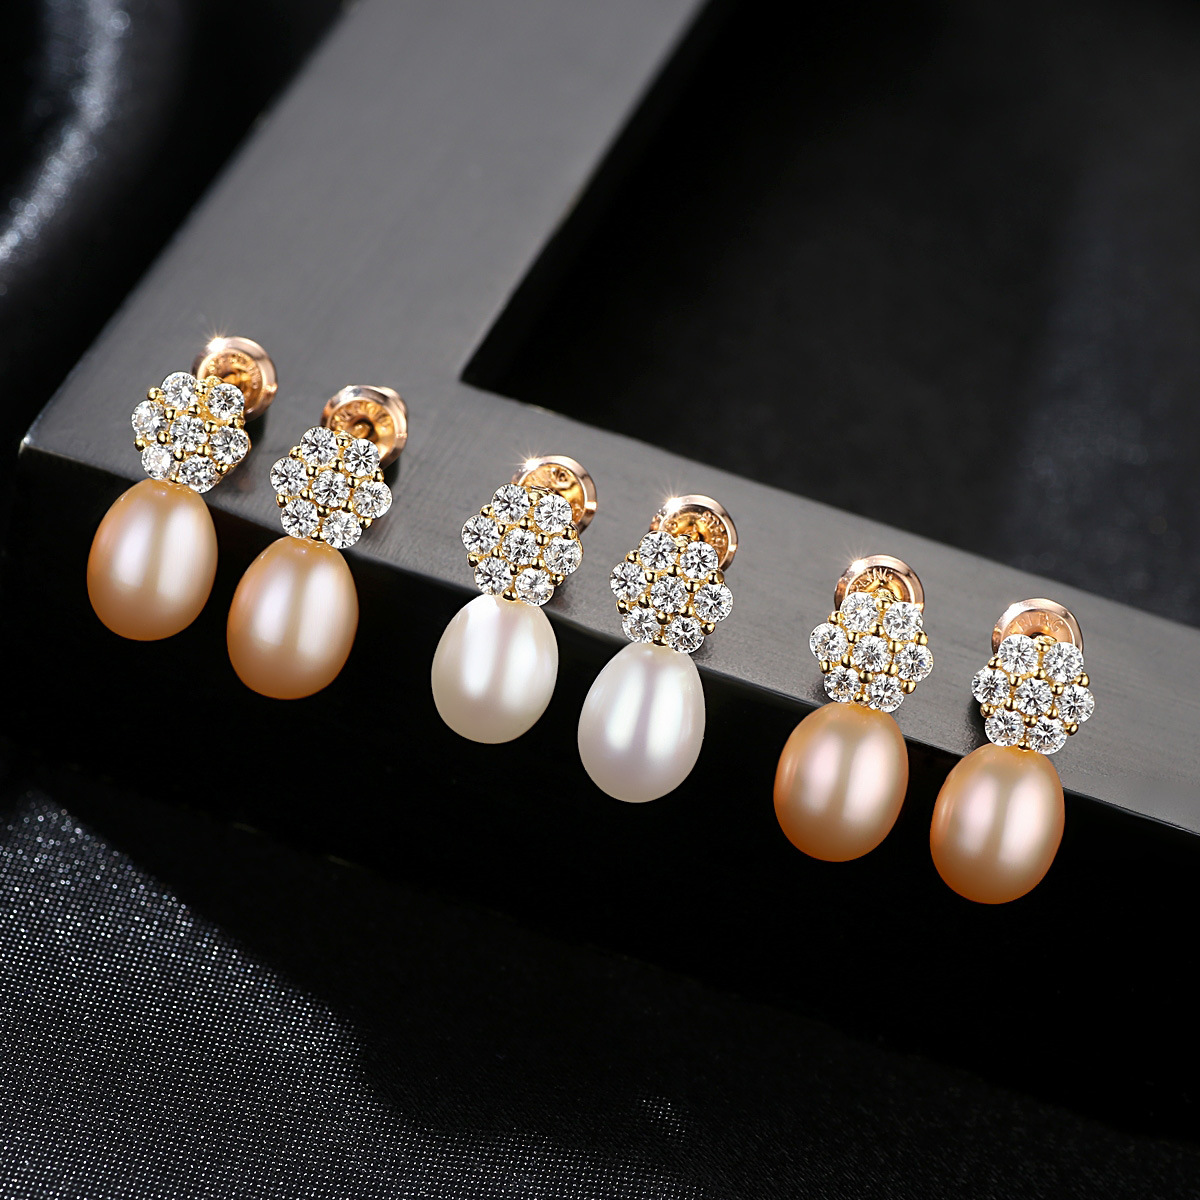 YUEYIN Sterling Silver Earrings 18K Gold Plated Real Nature Pearl for Women Flower Charming Wedding Party